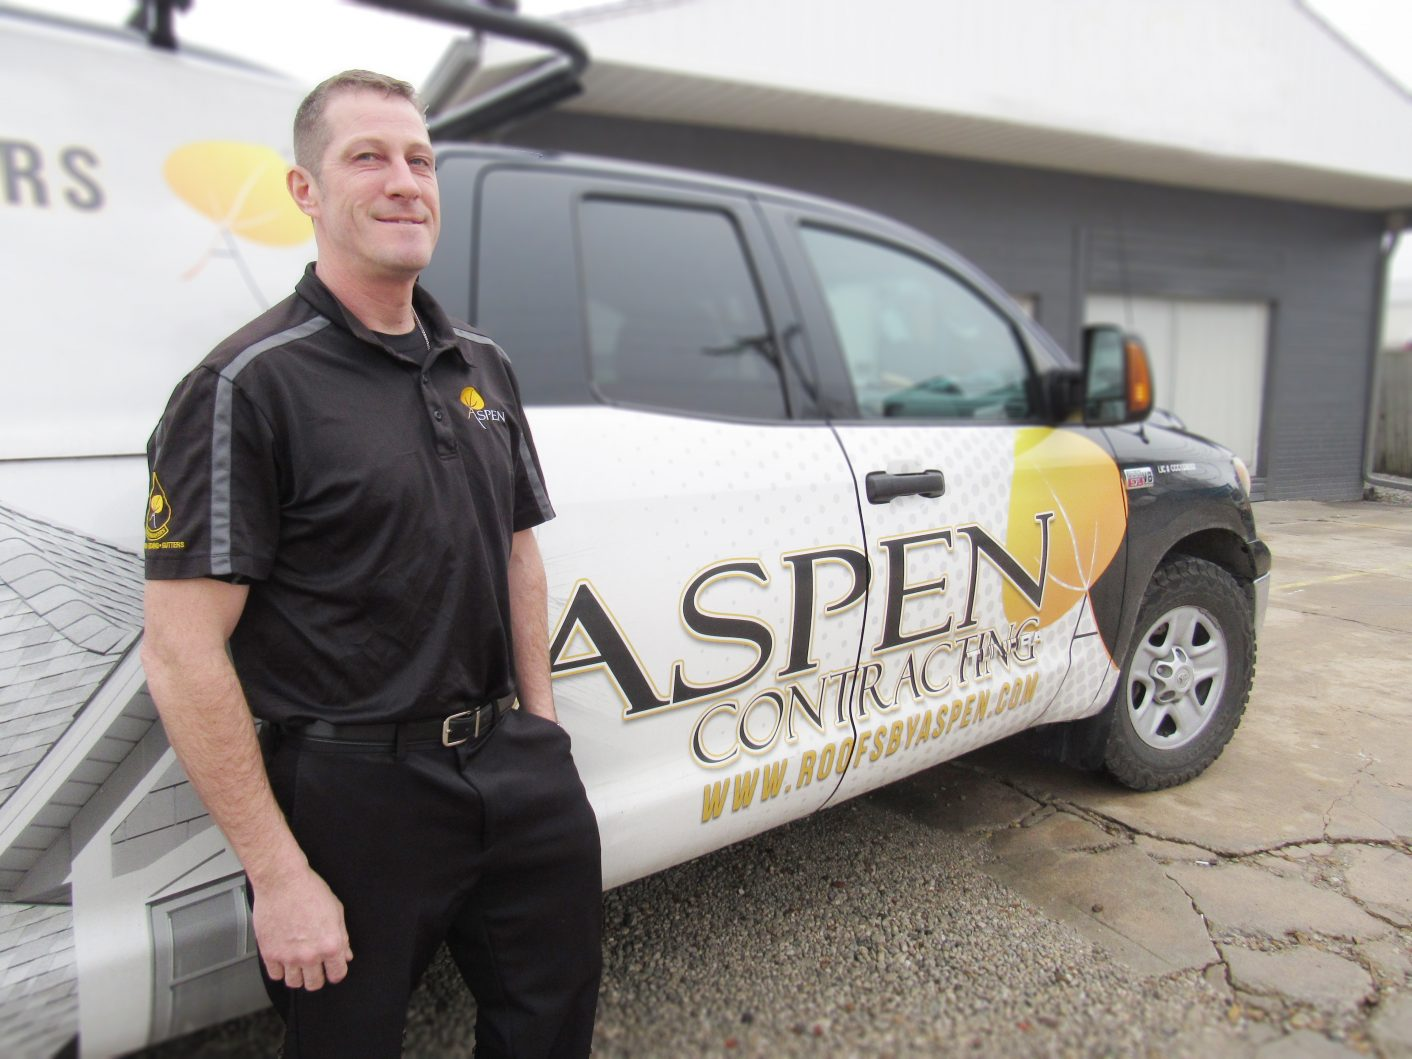 Oliver Archives Aspen Contracting